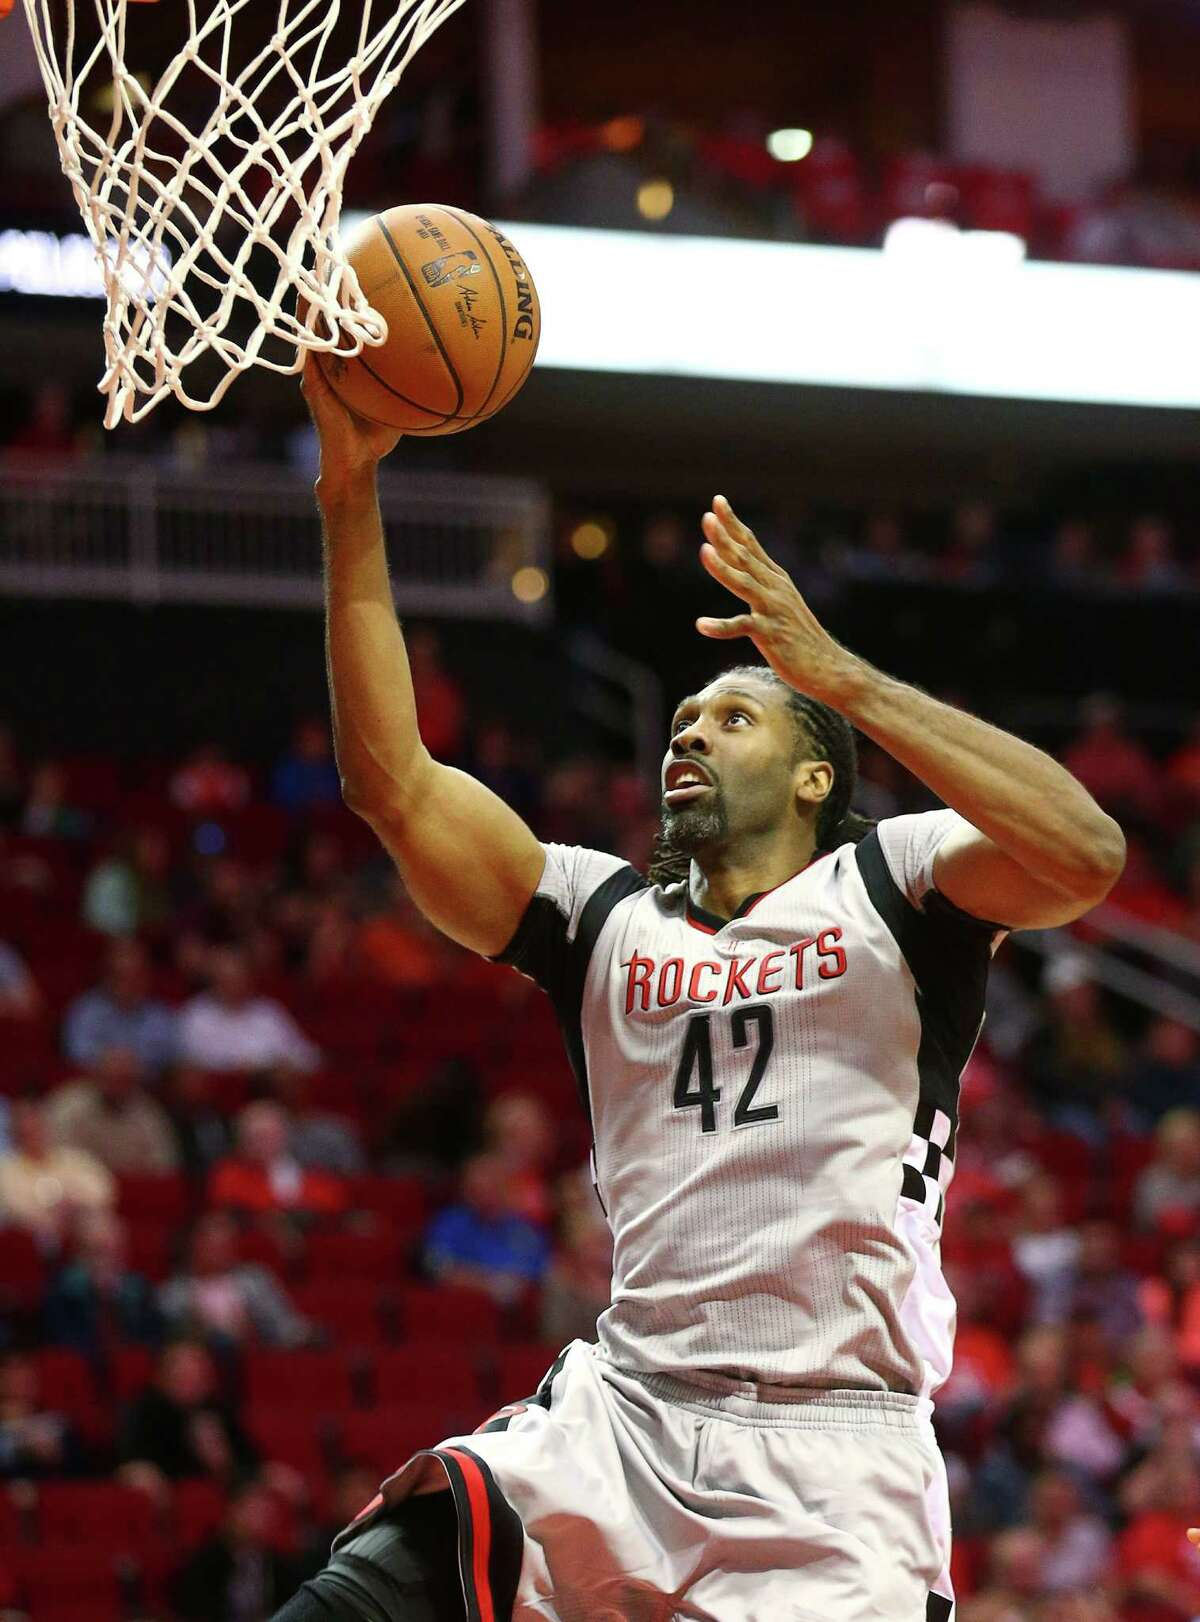 Houston Rockets center Nene Hilario (42) scores during the first quarter of an NBA game, at the Toyota Center, Friday, Dec. 16, 2016, in Houston.